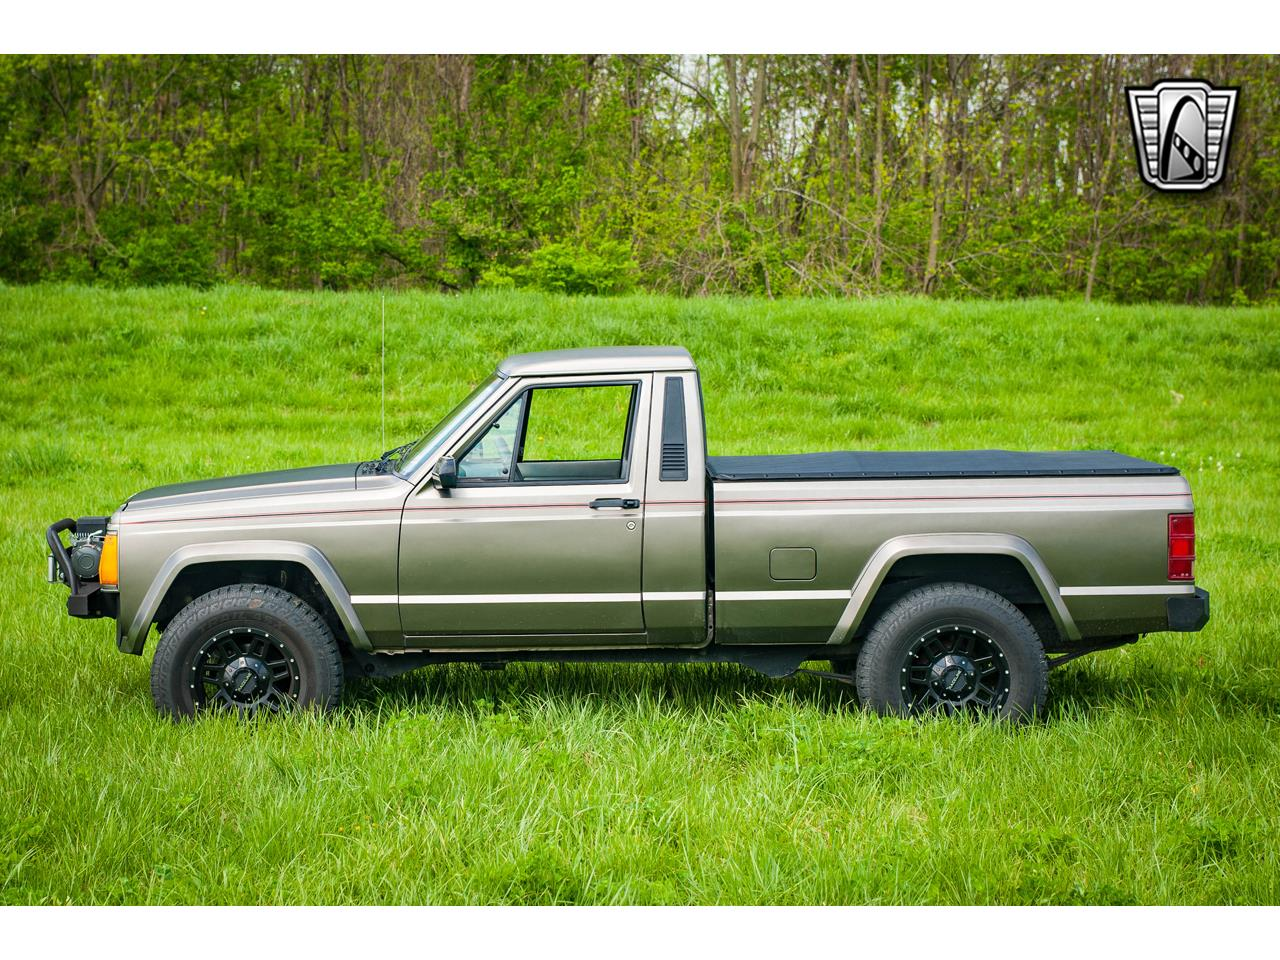 Large Picture of 1990 Jeep Comanche located in Illinois - $16,500.00 Offered by Gateway Classic Cars - St. Louis - QB8P